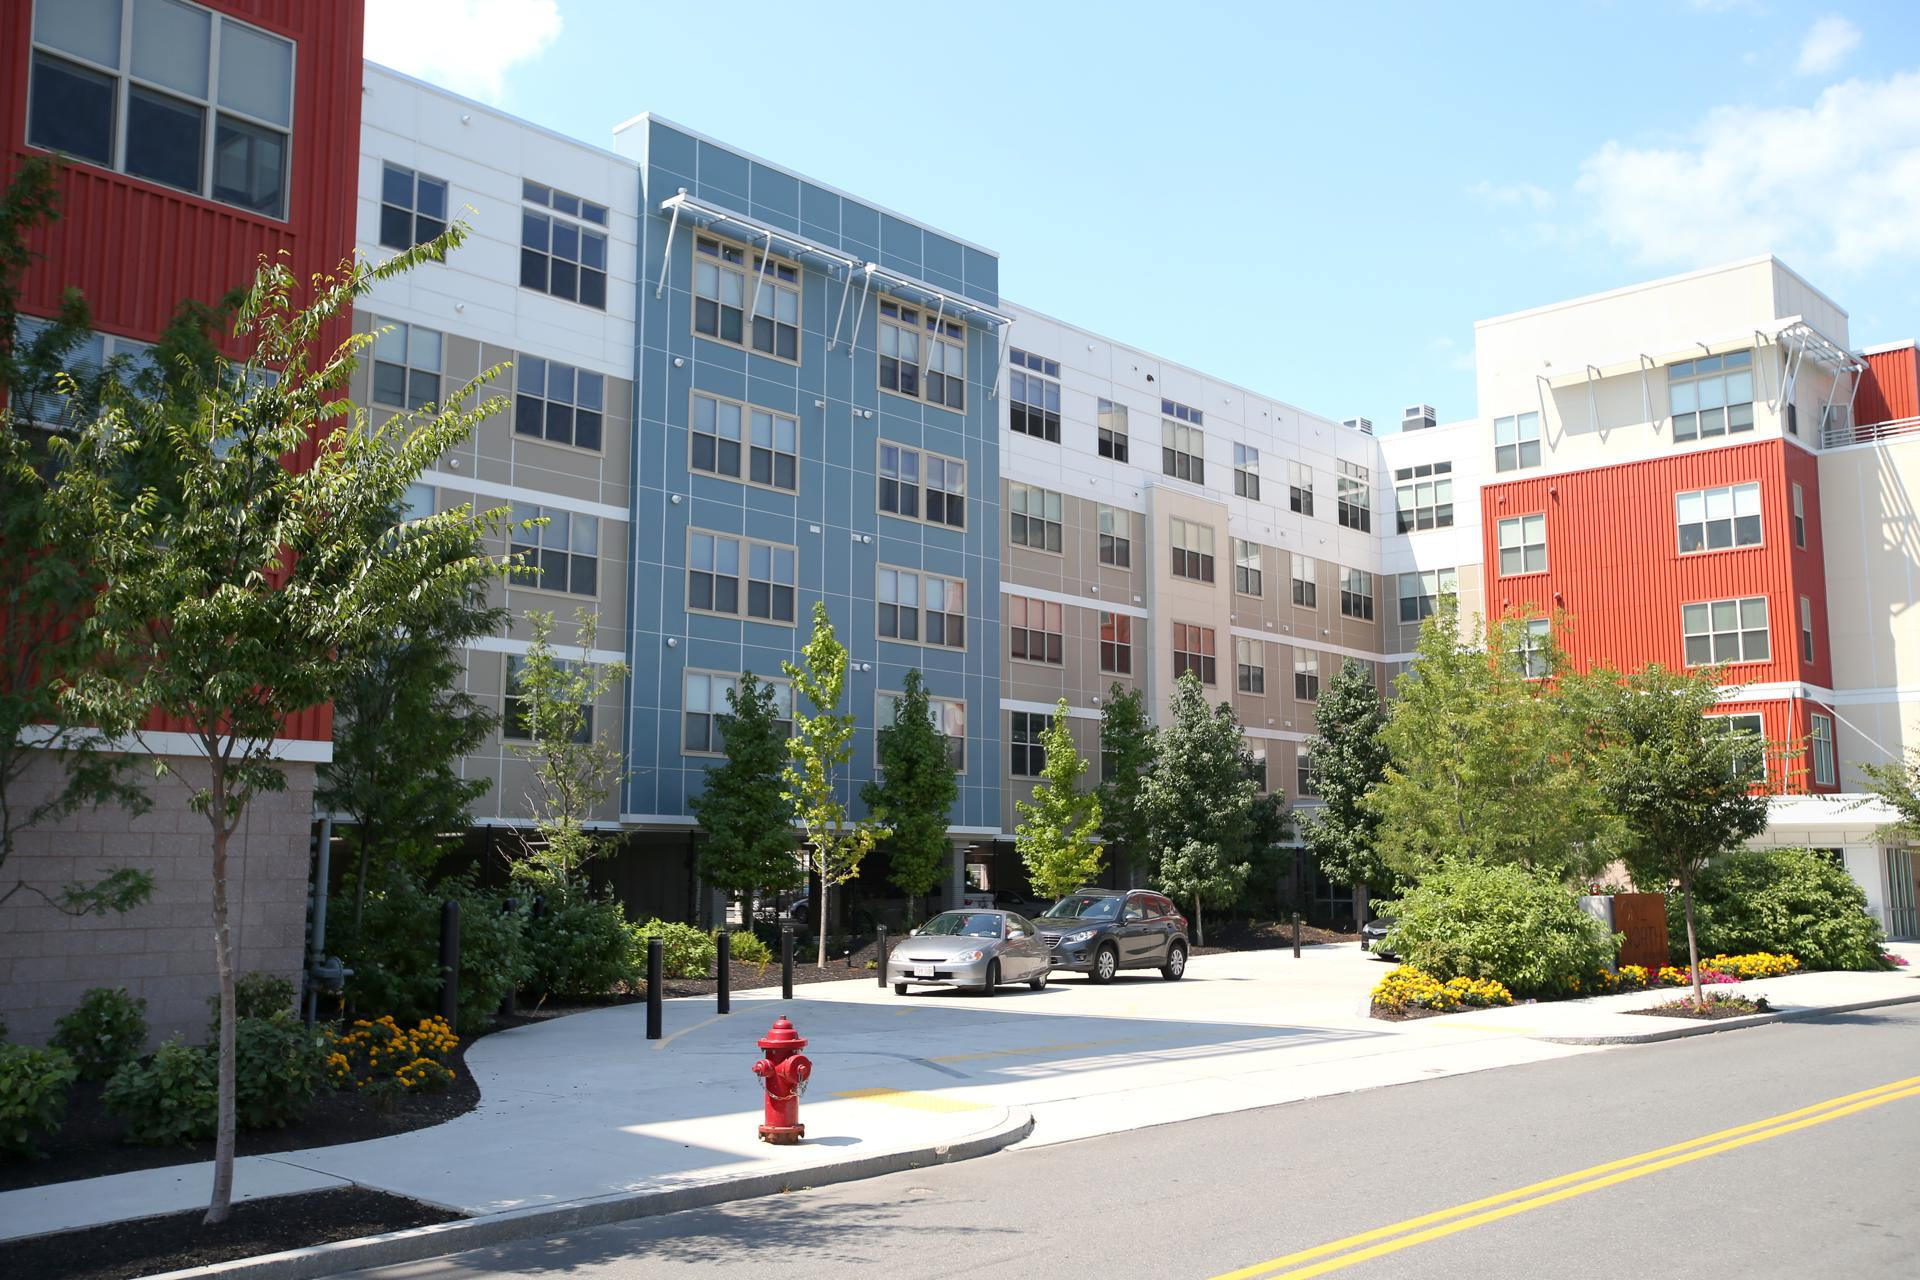 The One North of Boston opened its first building at 100 Heard St. (above) in 2014. Since opening, the complex has retained 62 percent of its tenants.